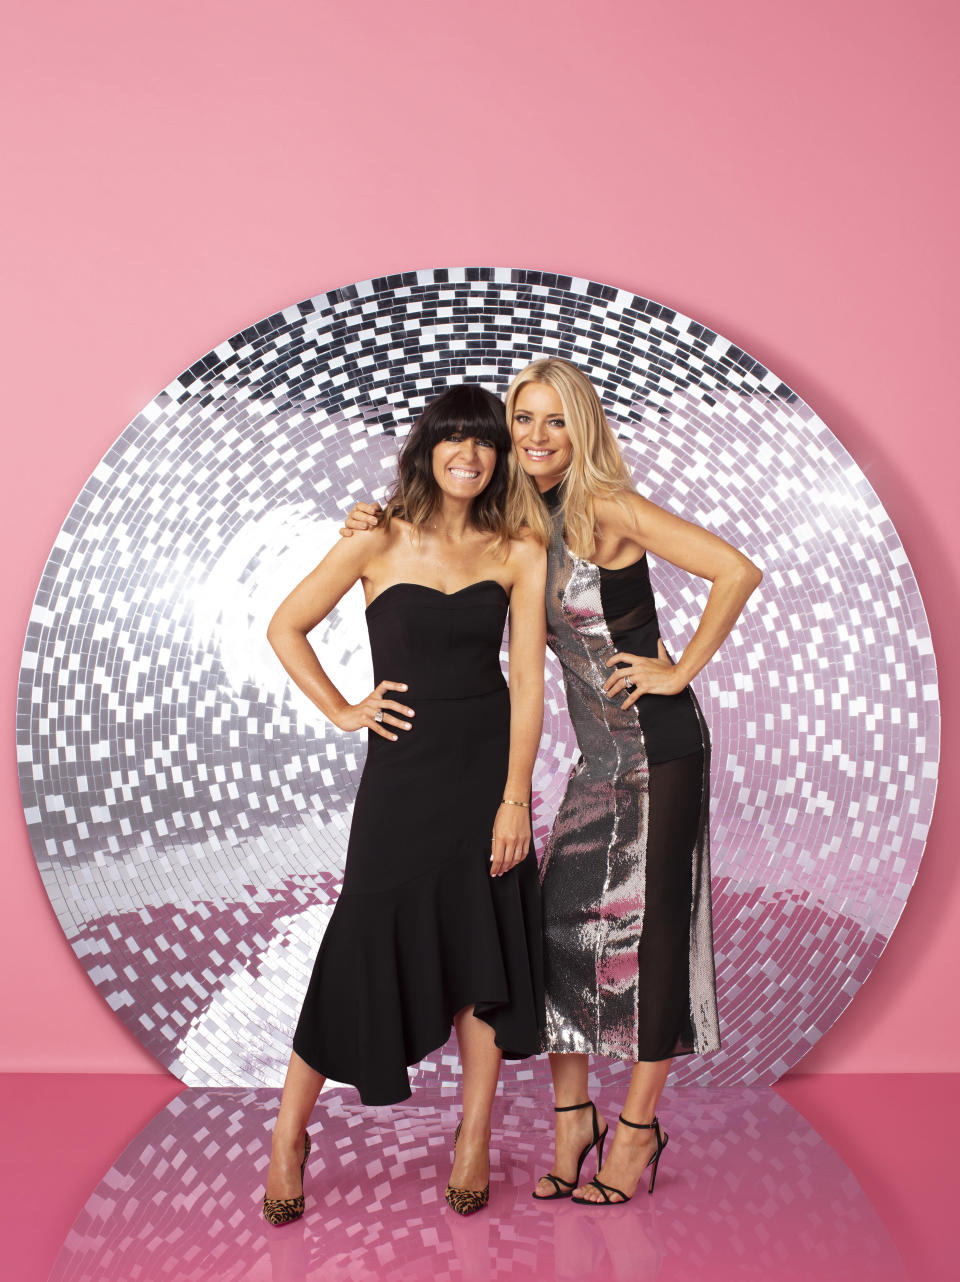 <p>Tess Daly and Claudia Winkleman are returning to their Strictly Come Dancing hosting duties this year. (BBC Pictures). </p>